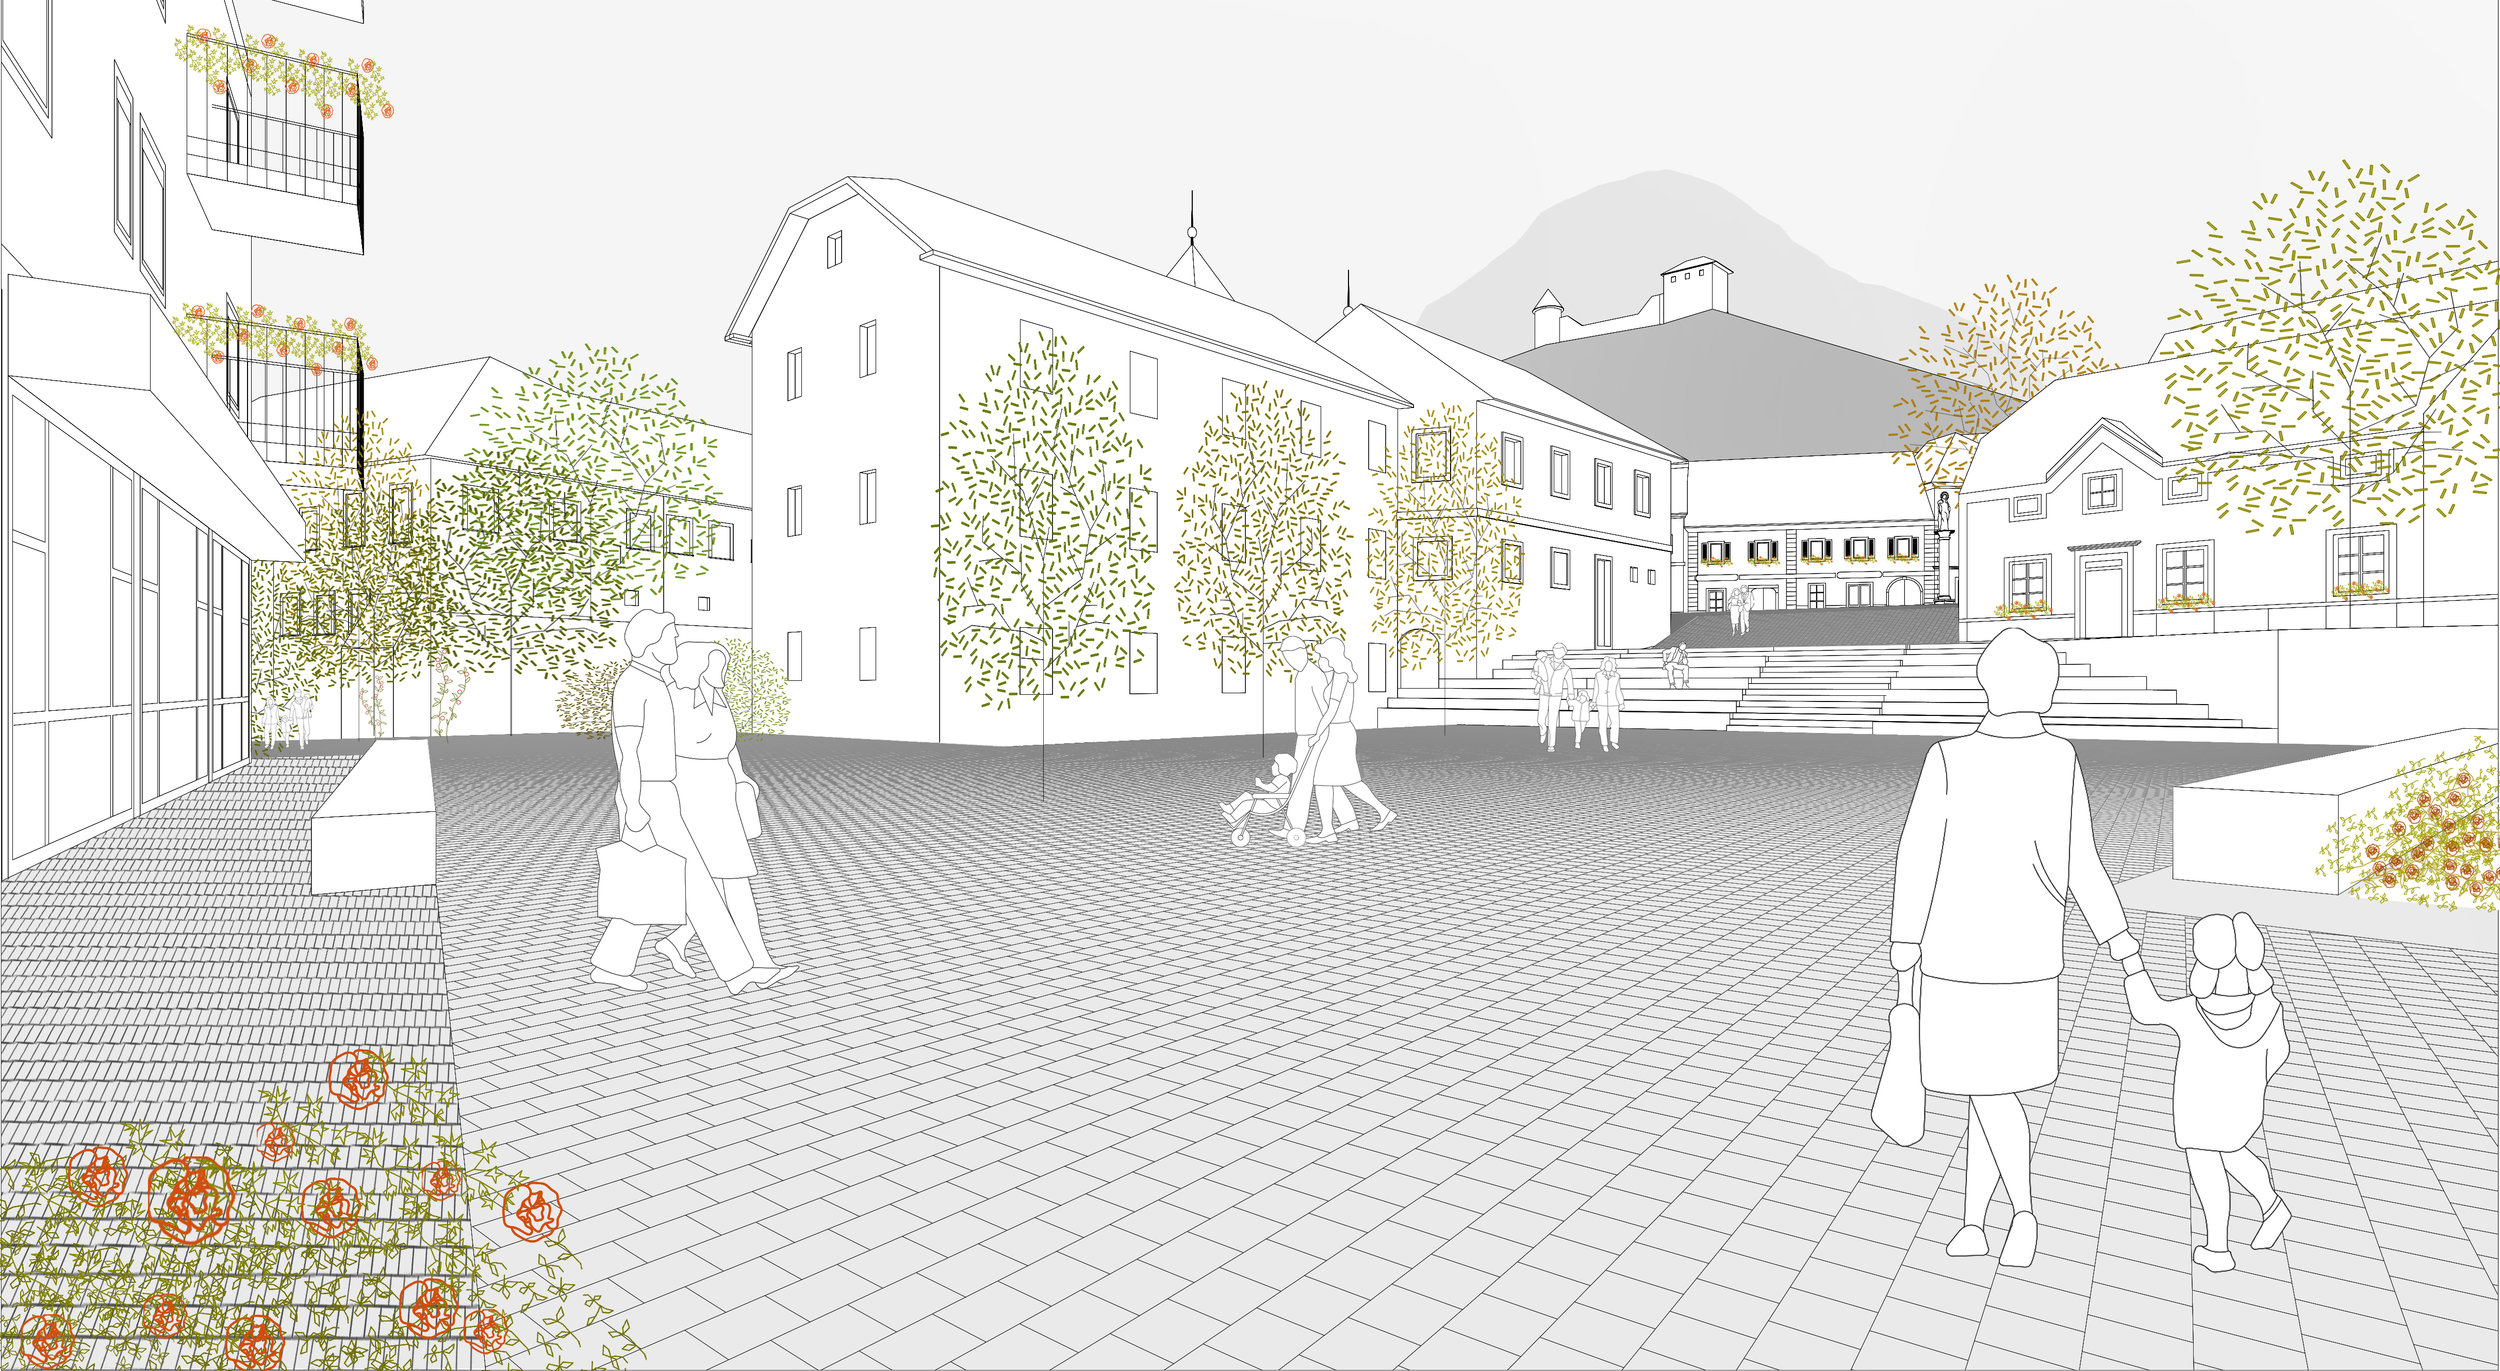 PUBLIC COMPETITION FOR A CITY CENTRE OF LAŠKO    3rd Prize  May 2019